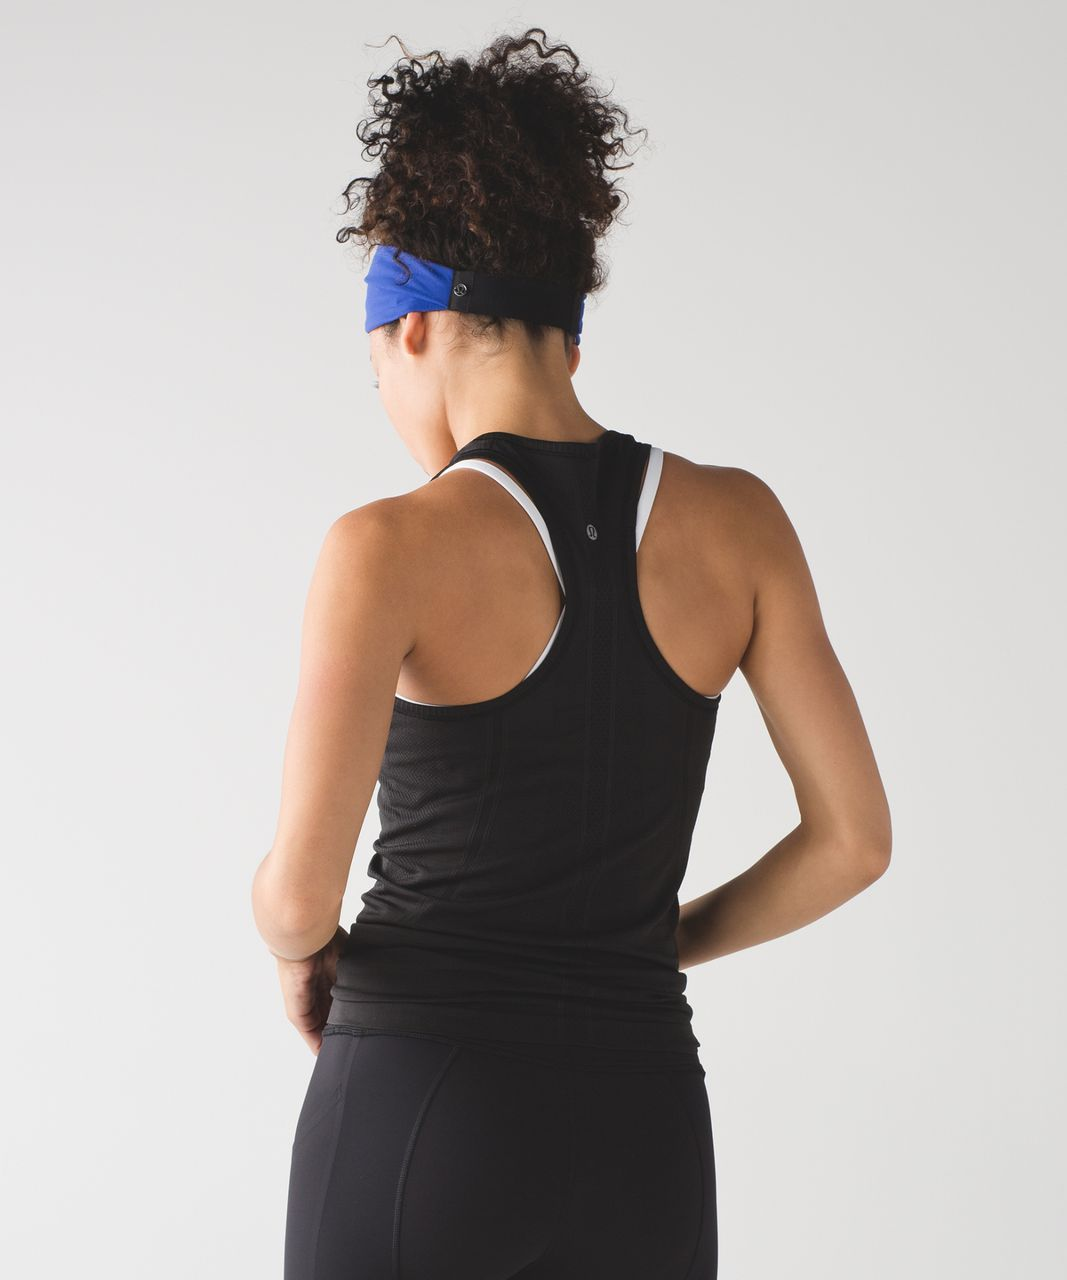 Lululemon Fringe Fighter Headband - Sapphire Blue / Black / Heathered Black